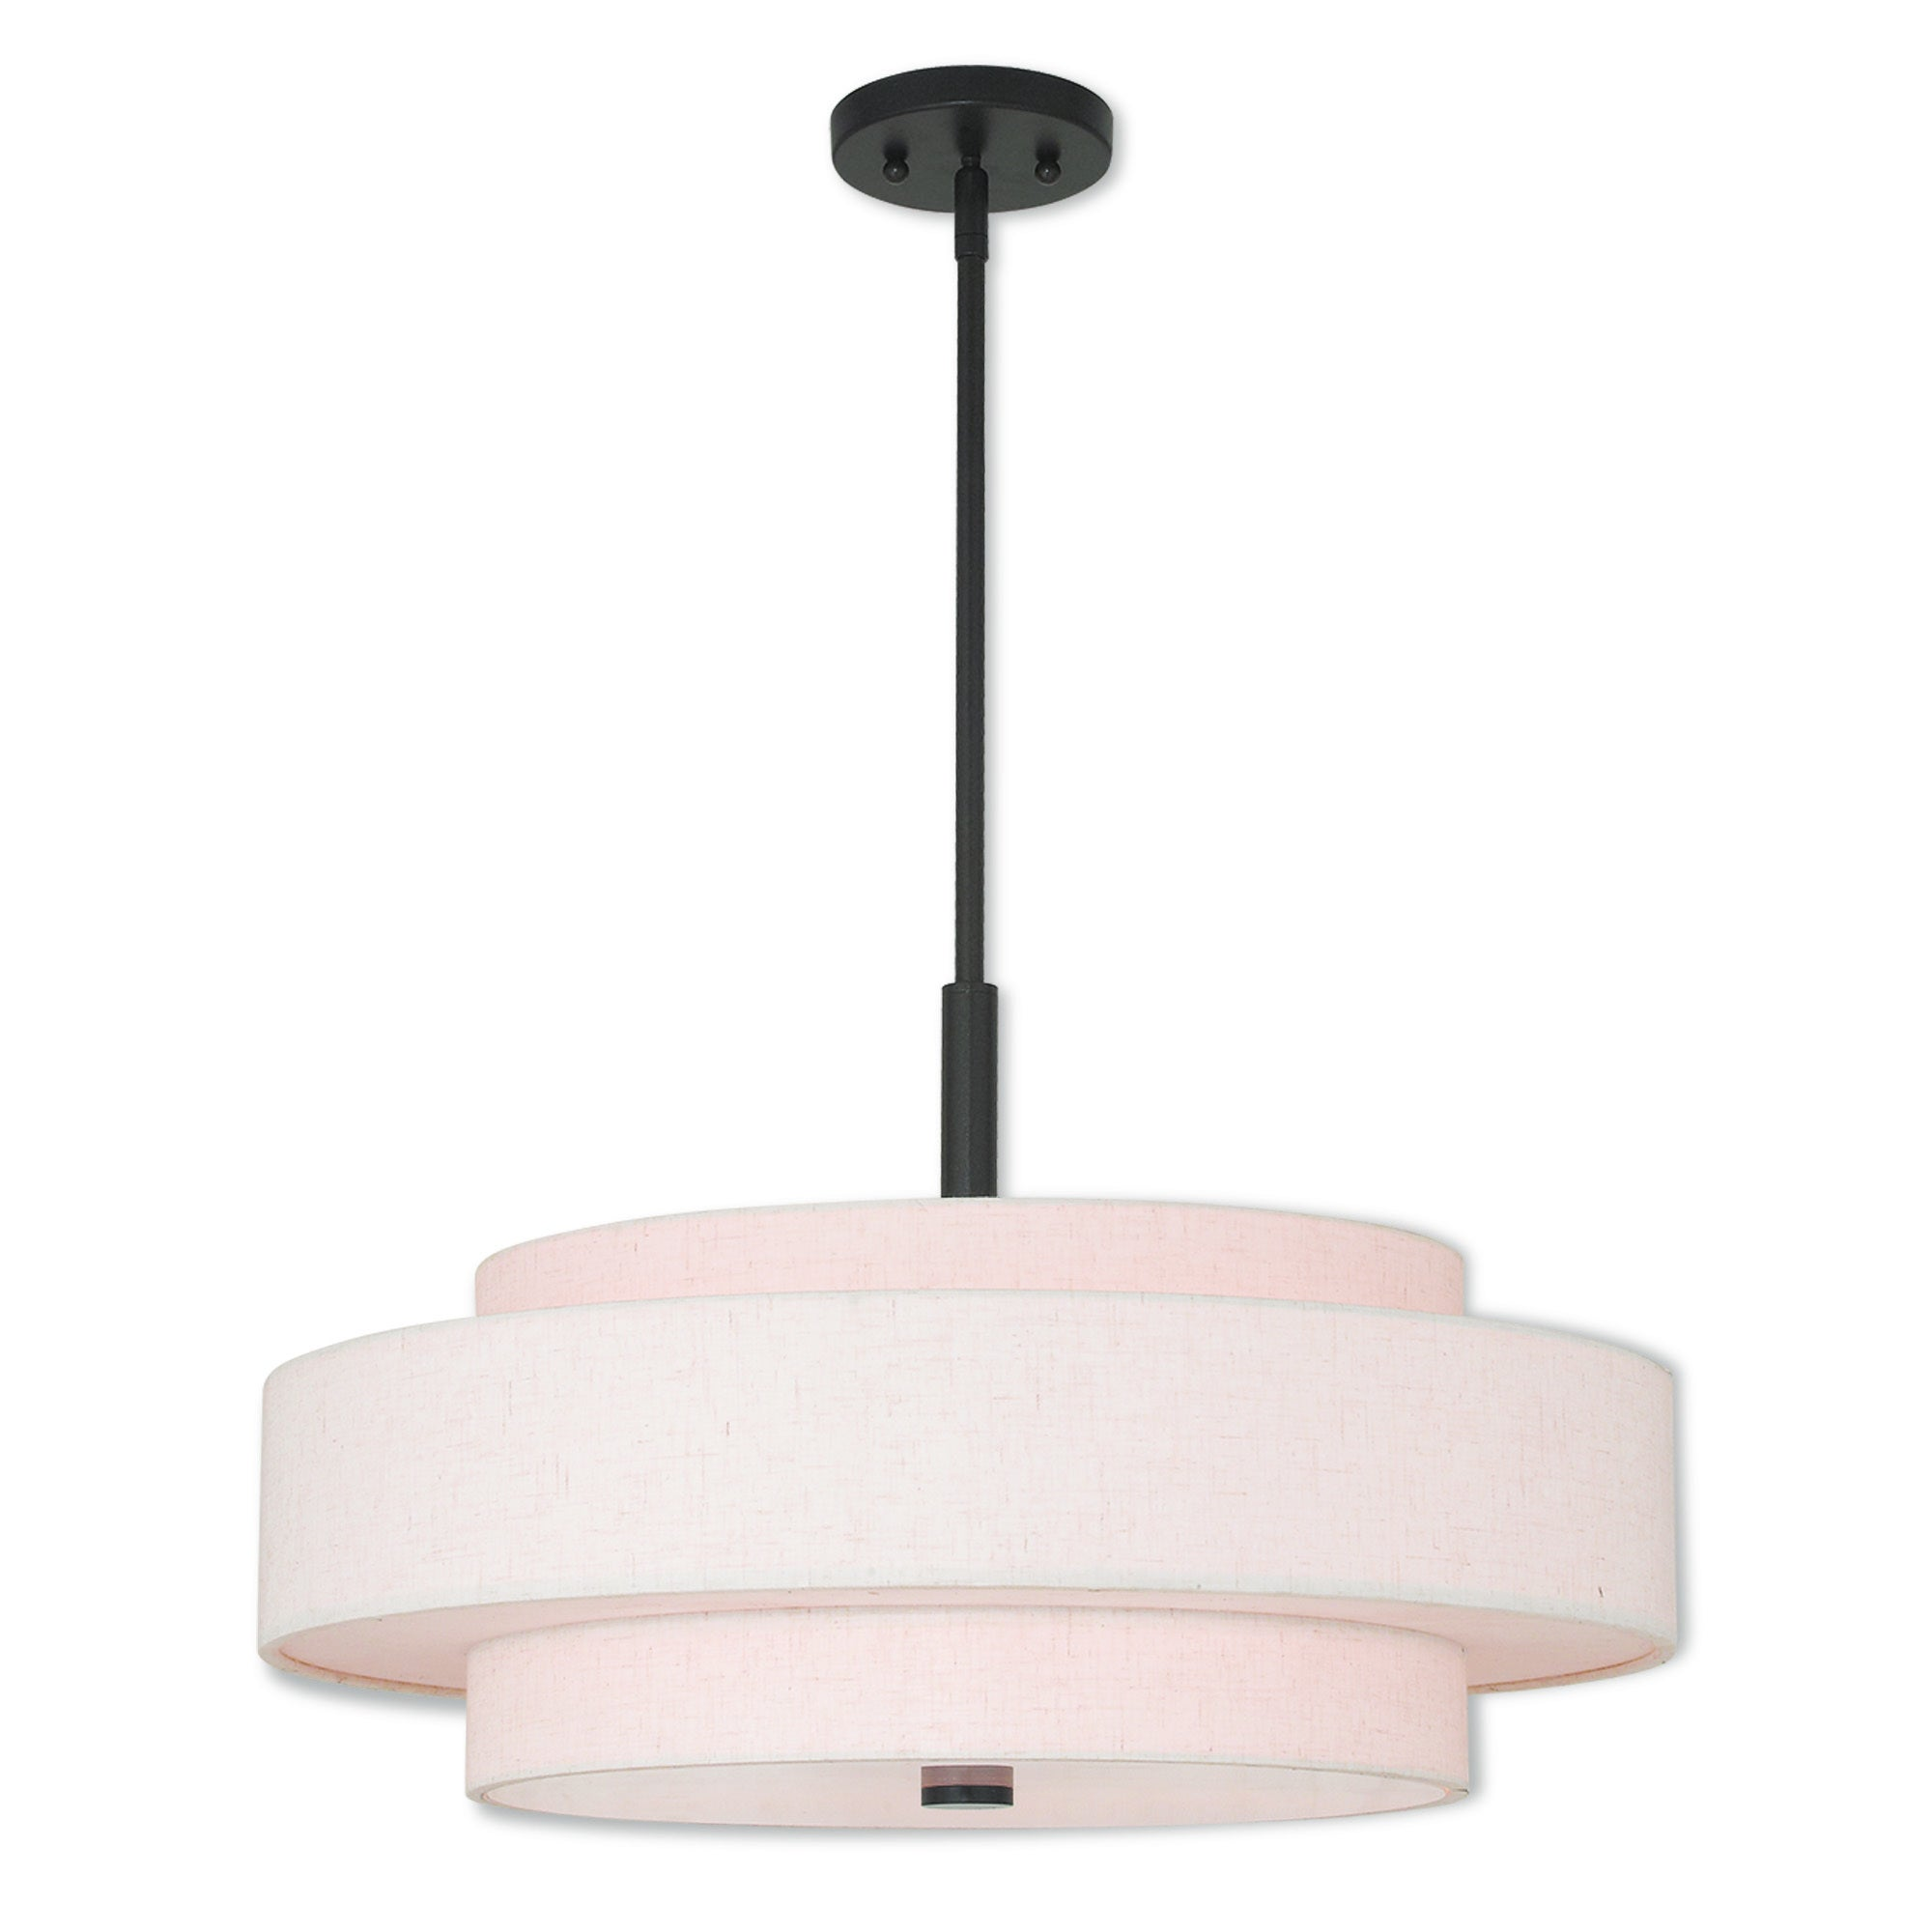 stnd products hubbardton light forge wren pendant product detail skt